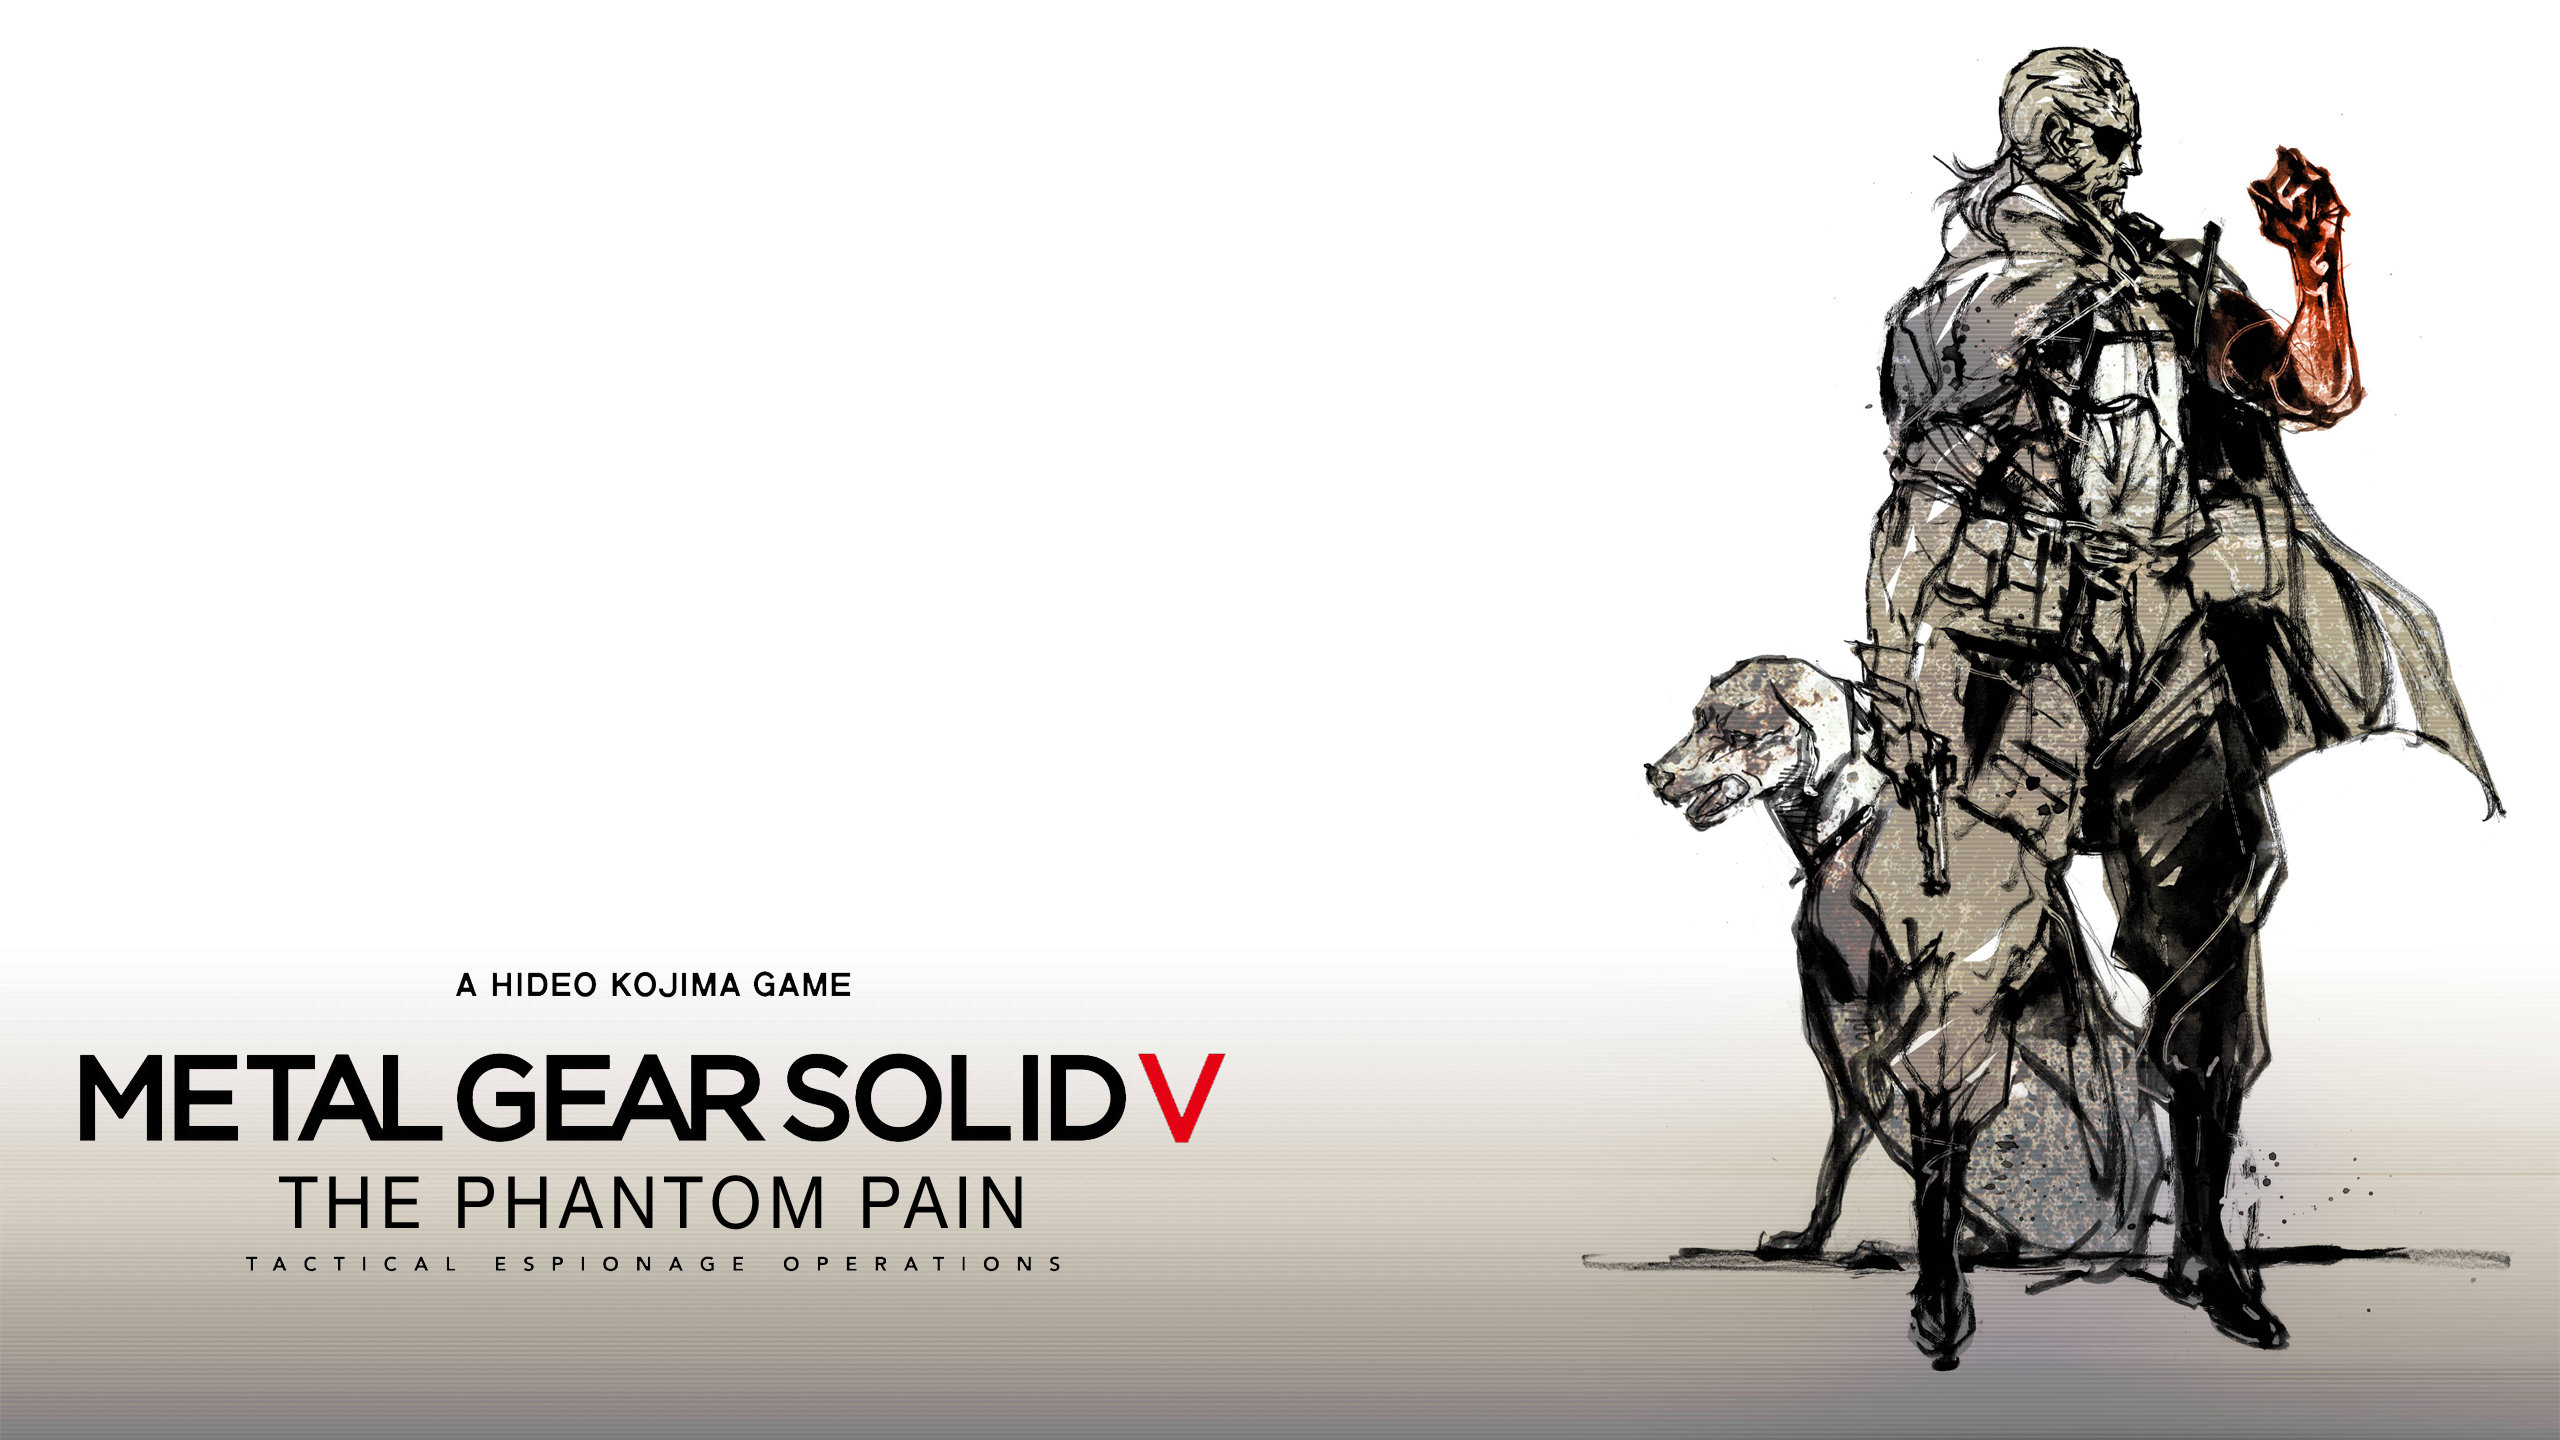 metal gear solid (mgs) wallpapers 2560x1440 desktop backgrounds